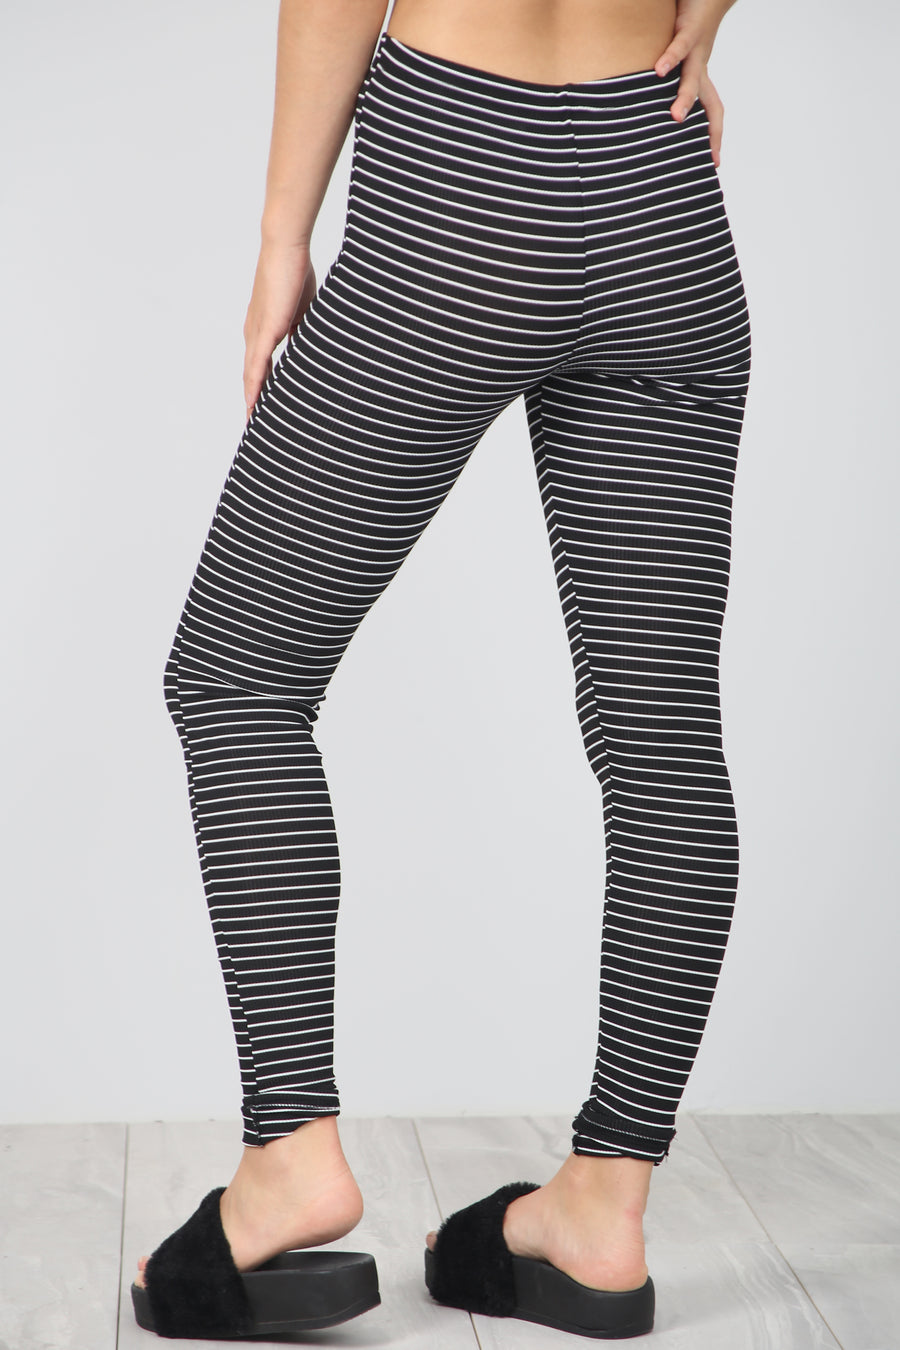 Monochrome High Waisted Stretch Striped Leggings - bejealous-com